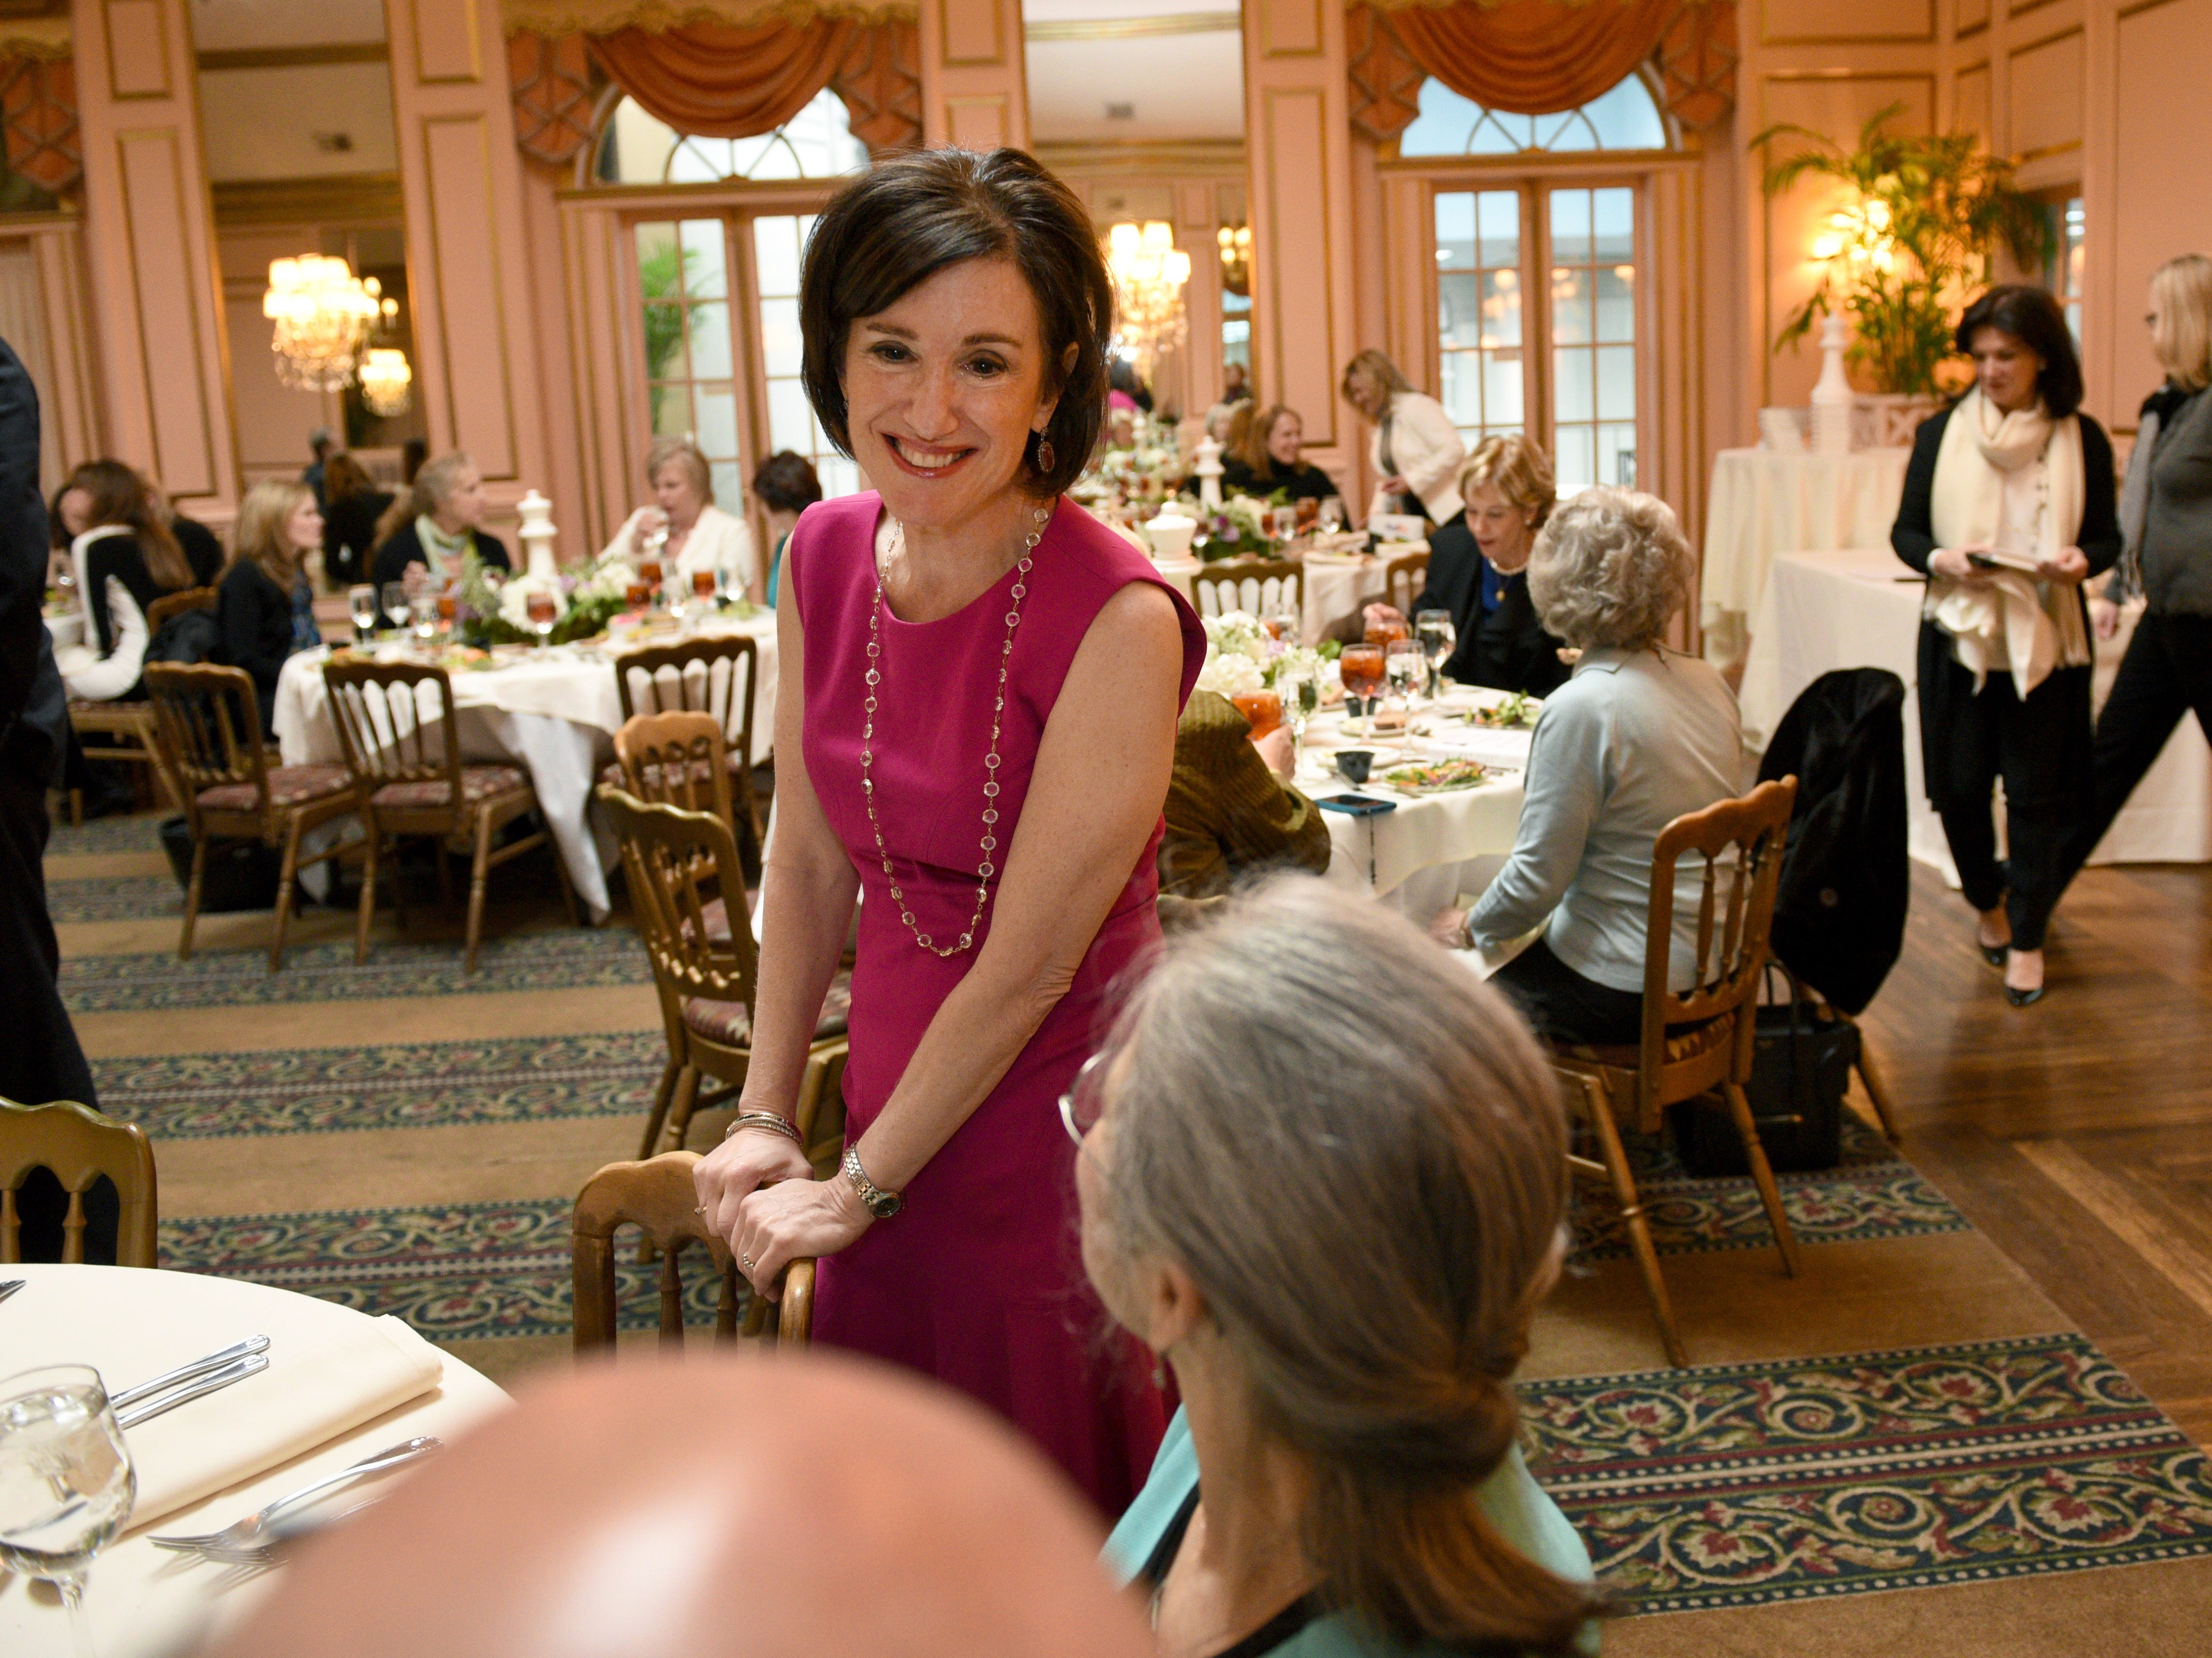 """Susan Packard, co-founder and former COO of HGTV,  at the launch of her new book New Rules of the Game: 10 Strategies for Women in the Workplace"""" at the Orangery Monday, Feb. 16, 2015."""